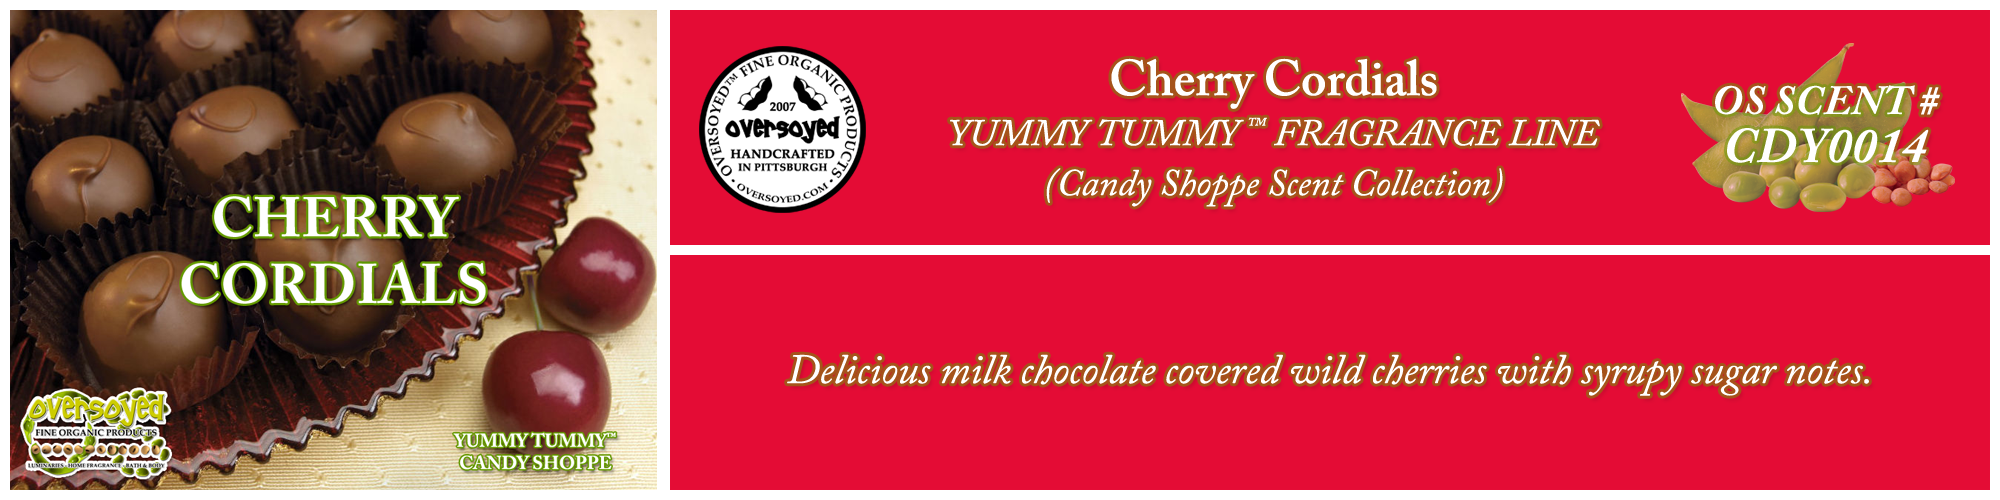 Cherry Cordials Handcrafted Products Collection